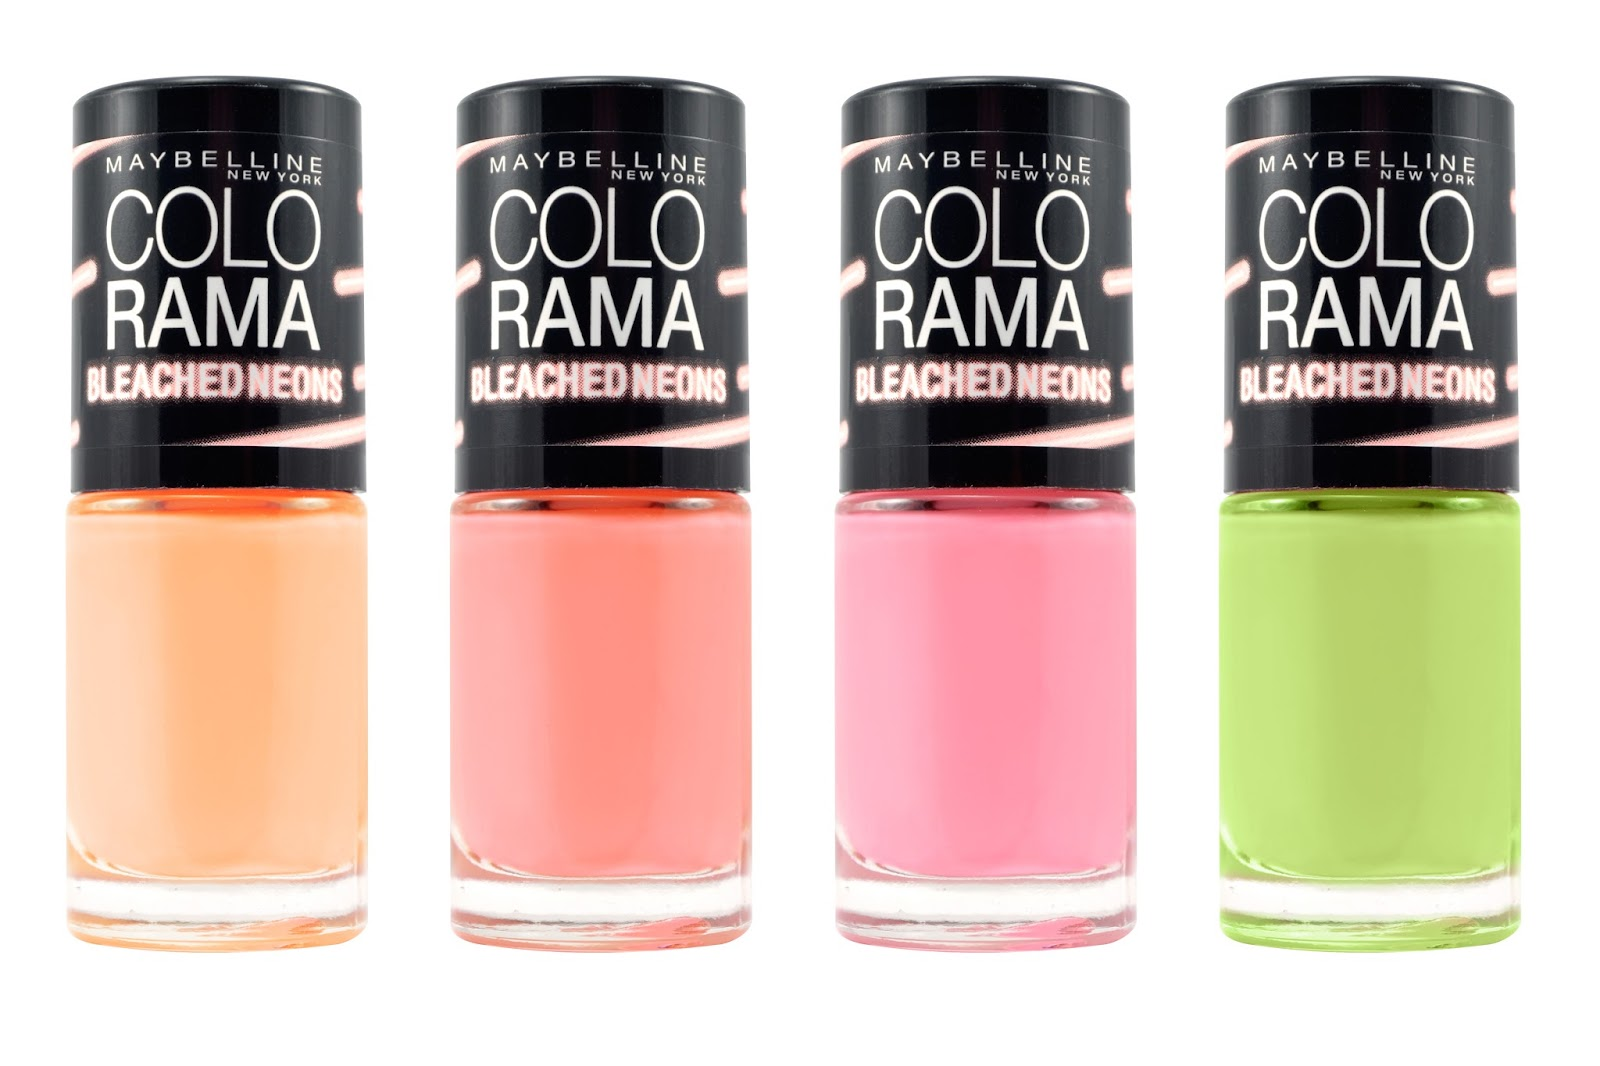 Review: ColoRAMA Bleashed neons nail polish